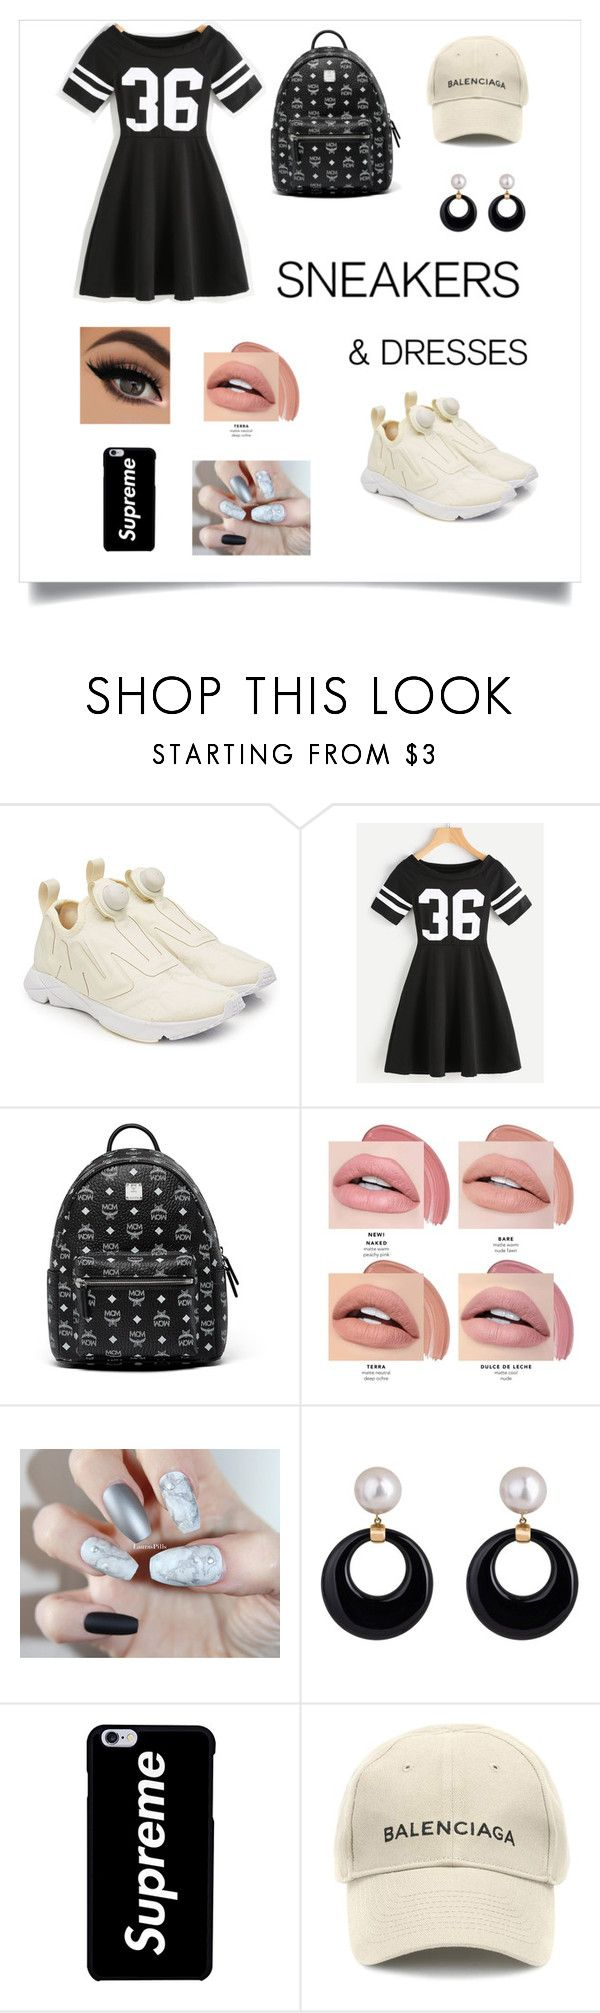 """""""Reebok Sneakers"""" by lilqueen23 ❤ liked on Polyvore featuring Reebok, MCM and Balenciaga"""